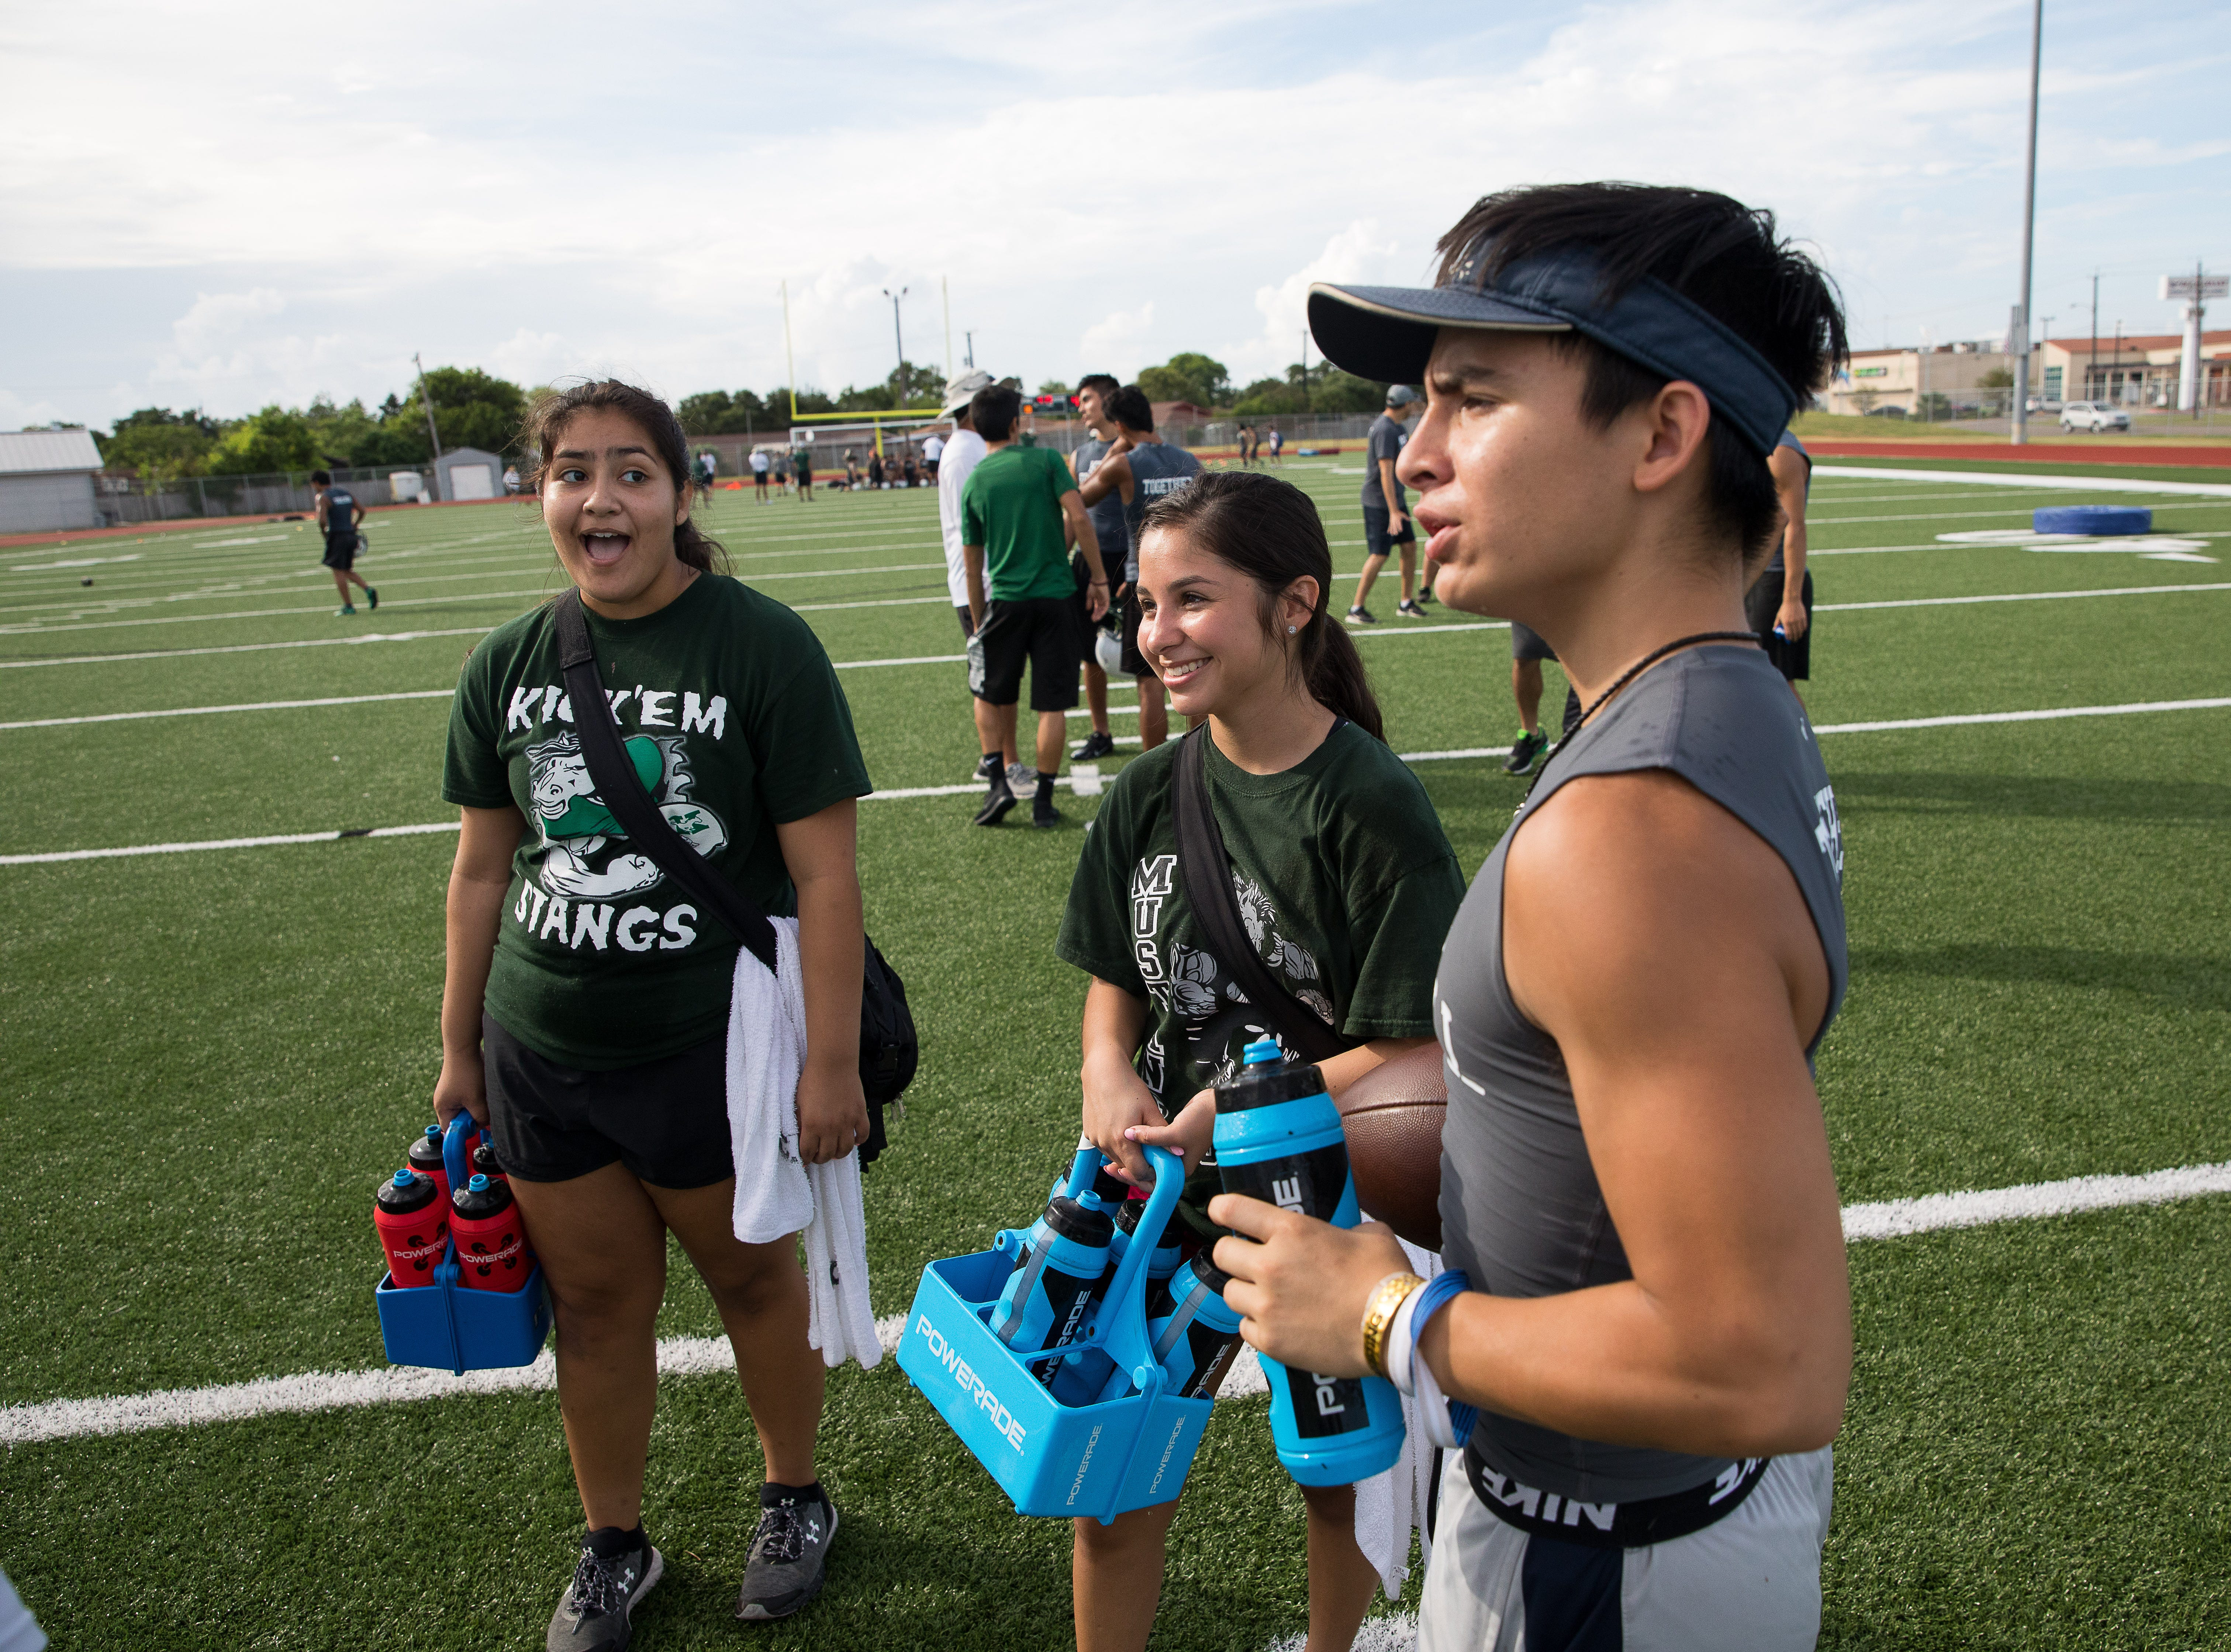 King football trainers hand out water on the first day of practice for the 2018 season at King High School on Monday, Aug. 6, 2018.